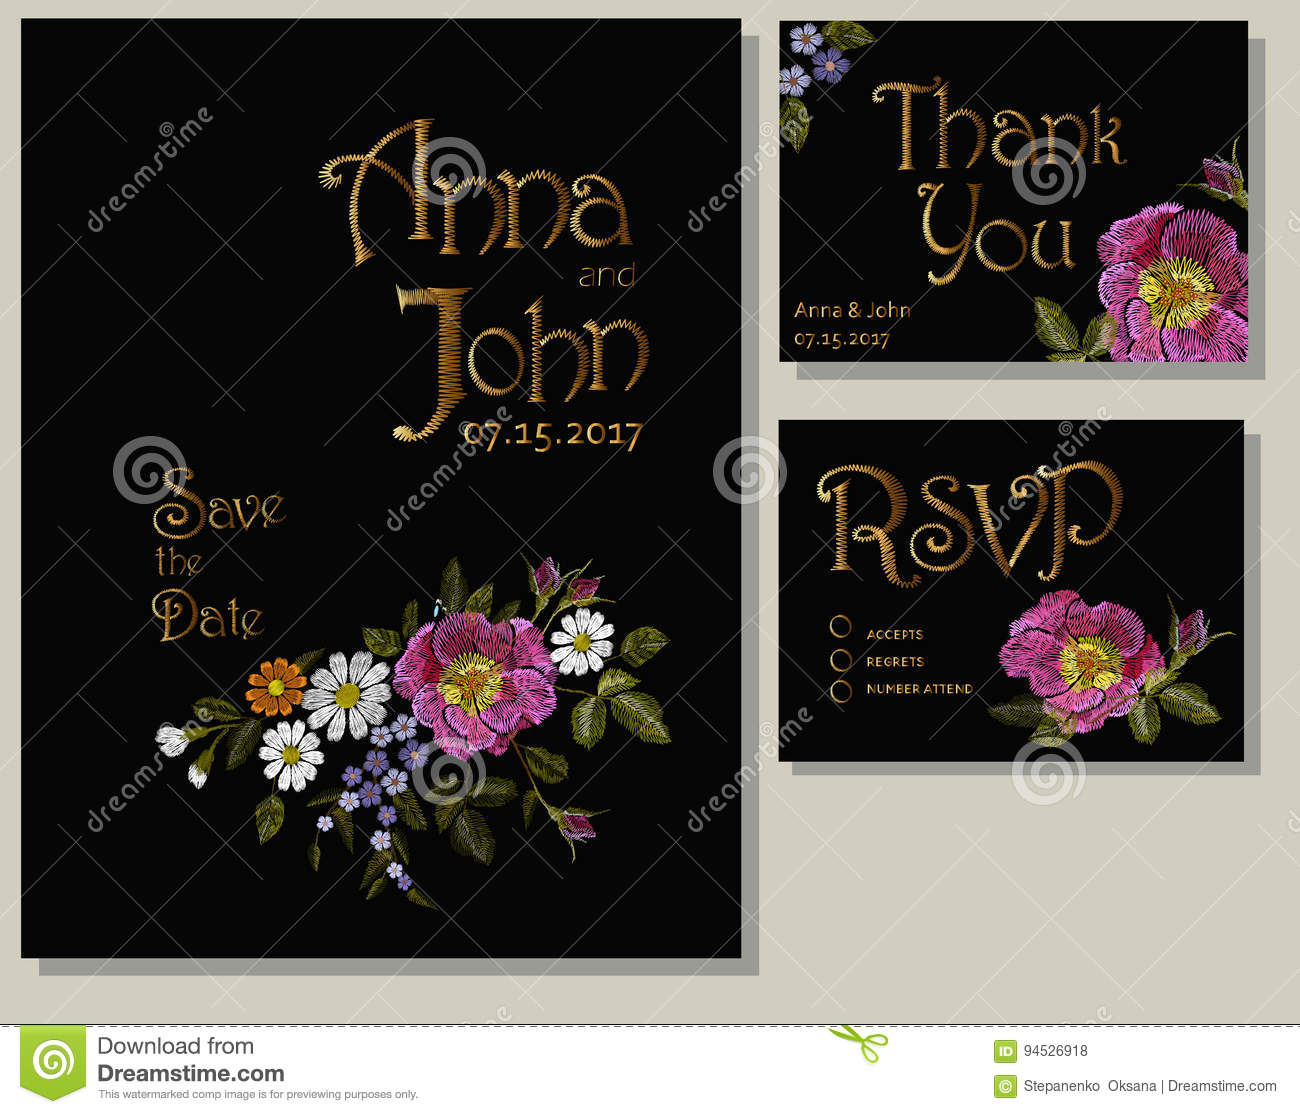 Rsvp Cartoons Illustrations  Vector Stock Images  2228 Pictures to download from